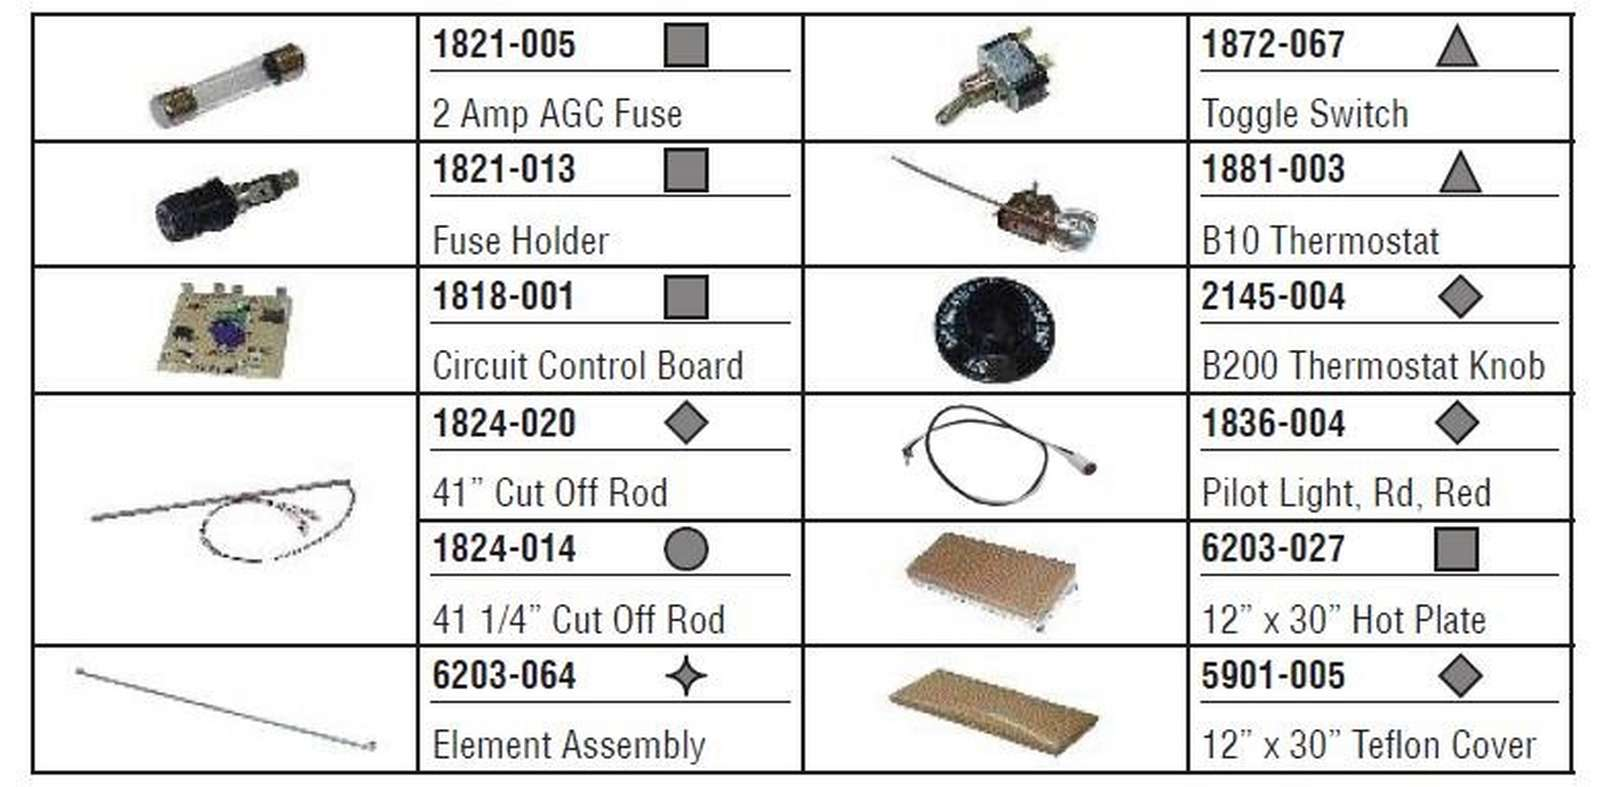 Commercial Kitchen Oem Replacement Parts Heritage Rite Boiler Wiring Diagram Ipd 580017 370161